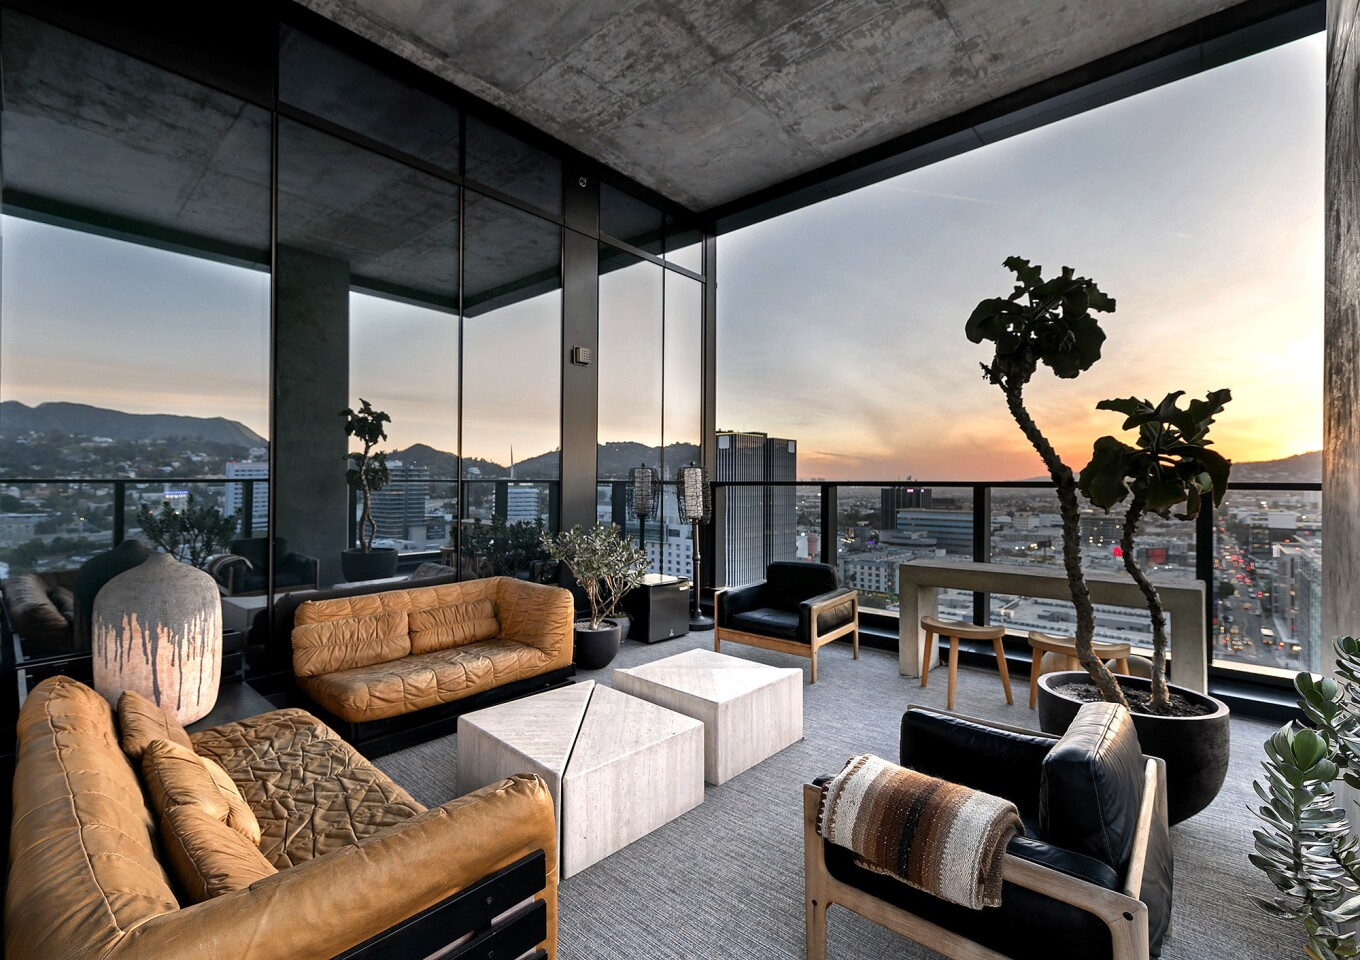 Home of the Week | A Columbia Square penthouse dressed to the nines